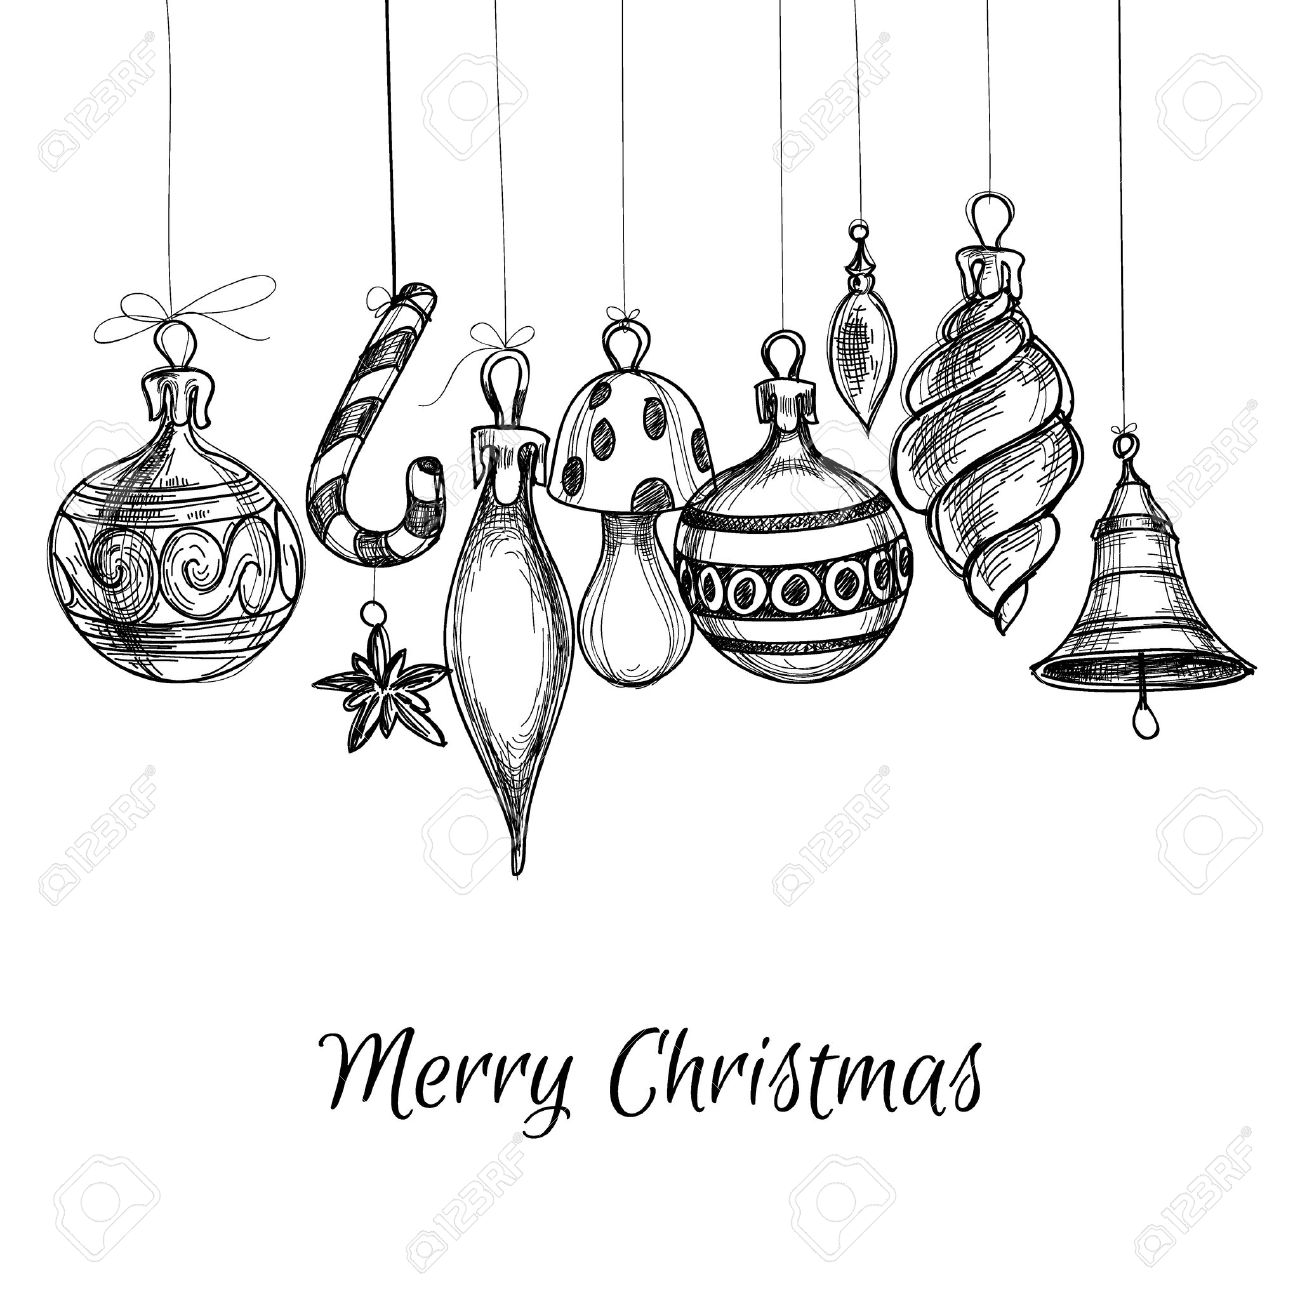 Black and white ornaments - Black And White Christmas Hand Drawn Ornaments Stock Vector 33102226